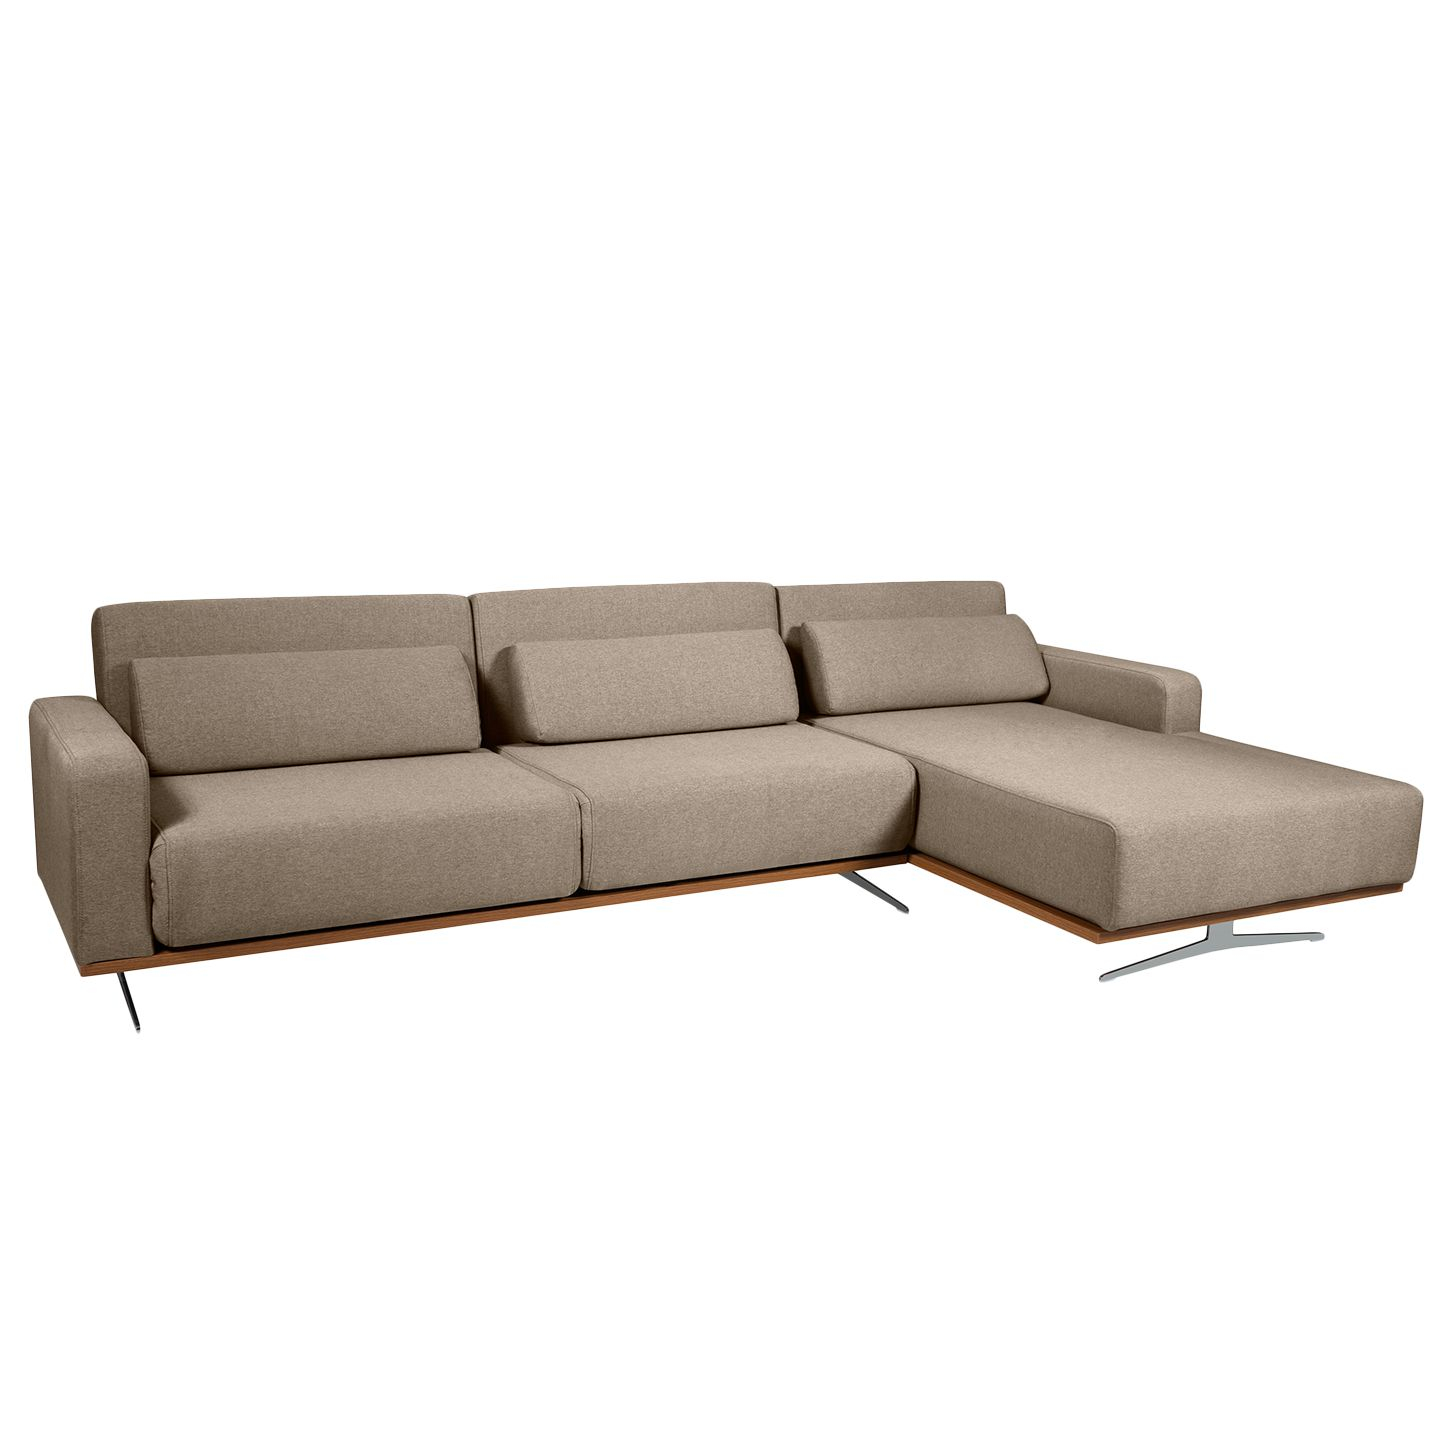 ecksofa copperfield ii mit schlaffunktion webstoff. Black Bedroom Furniture Sets. Home Design Ideas